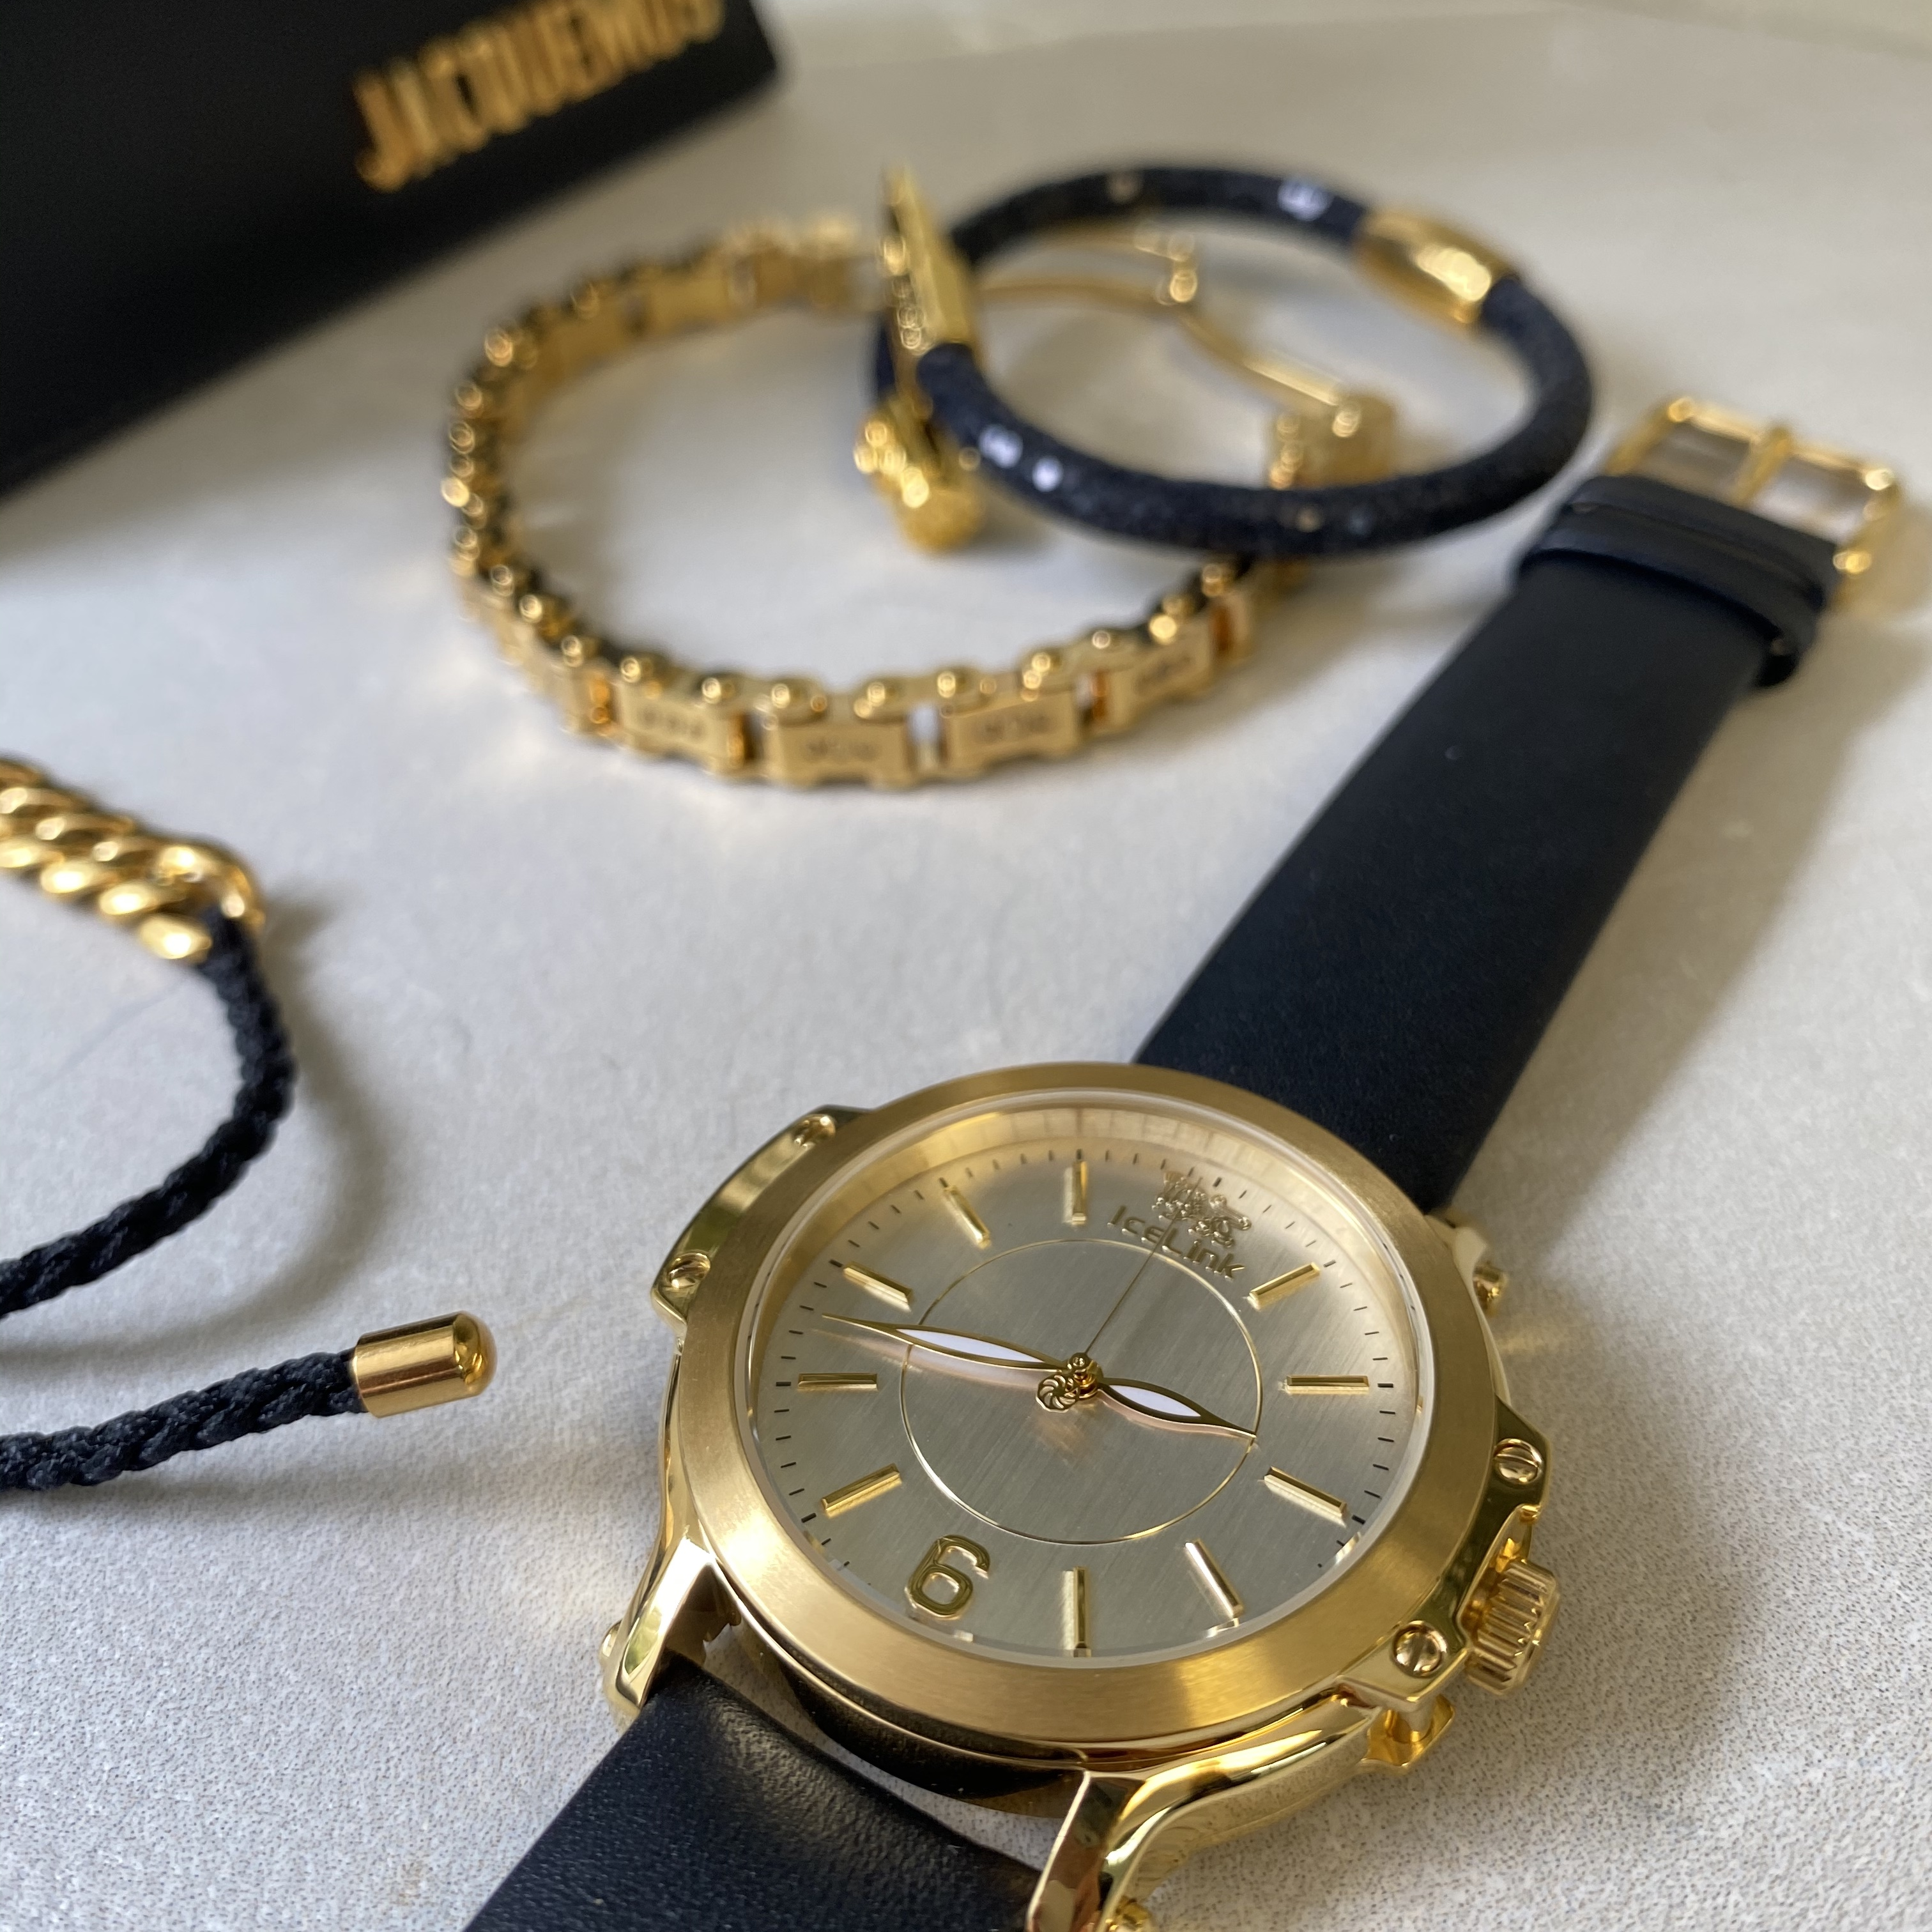 Gold & White Watch with black band